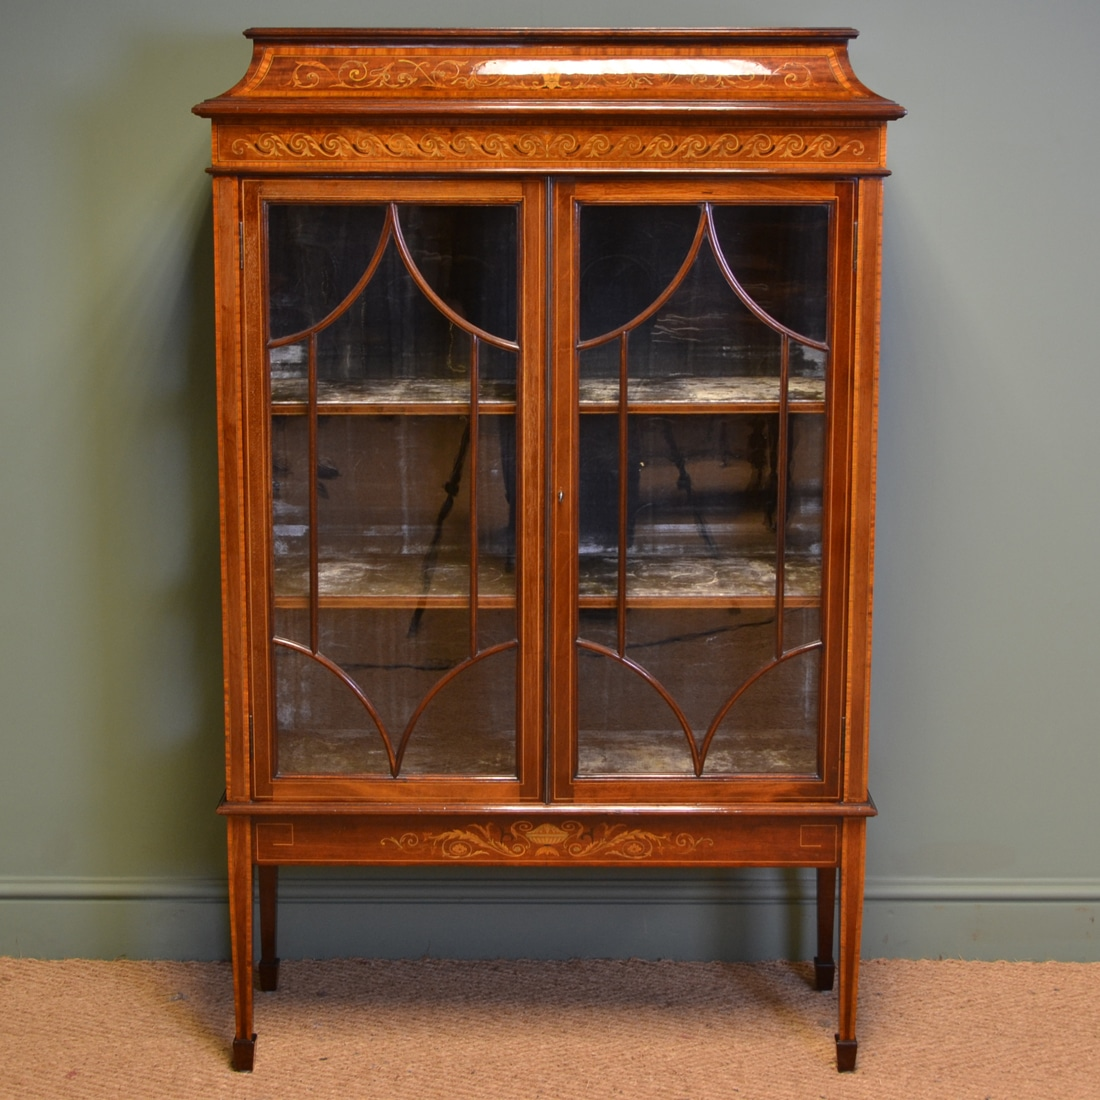 Spectacular Exhibition Quality Maple & Co Inlaid Mahogany Antique Display  Cabinet - Spectacular Exhibition Quality Maple & Co Inlaid Mahogany Antique